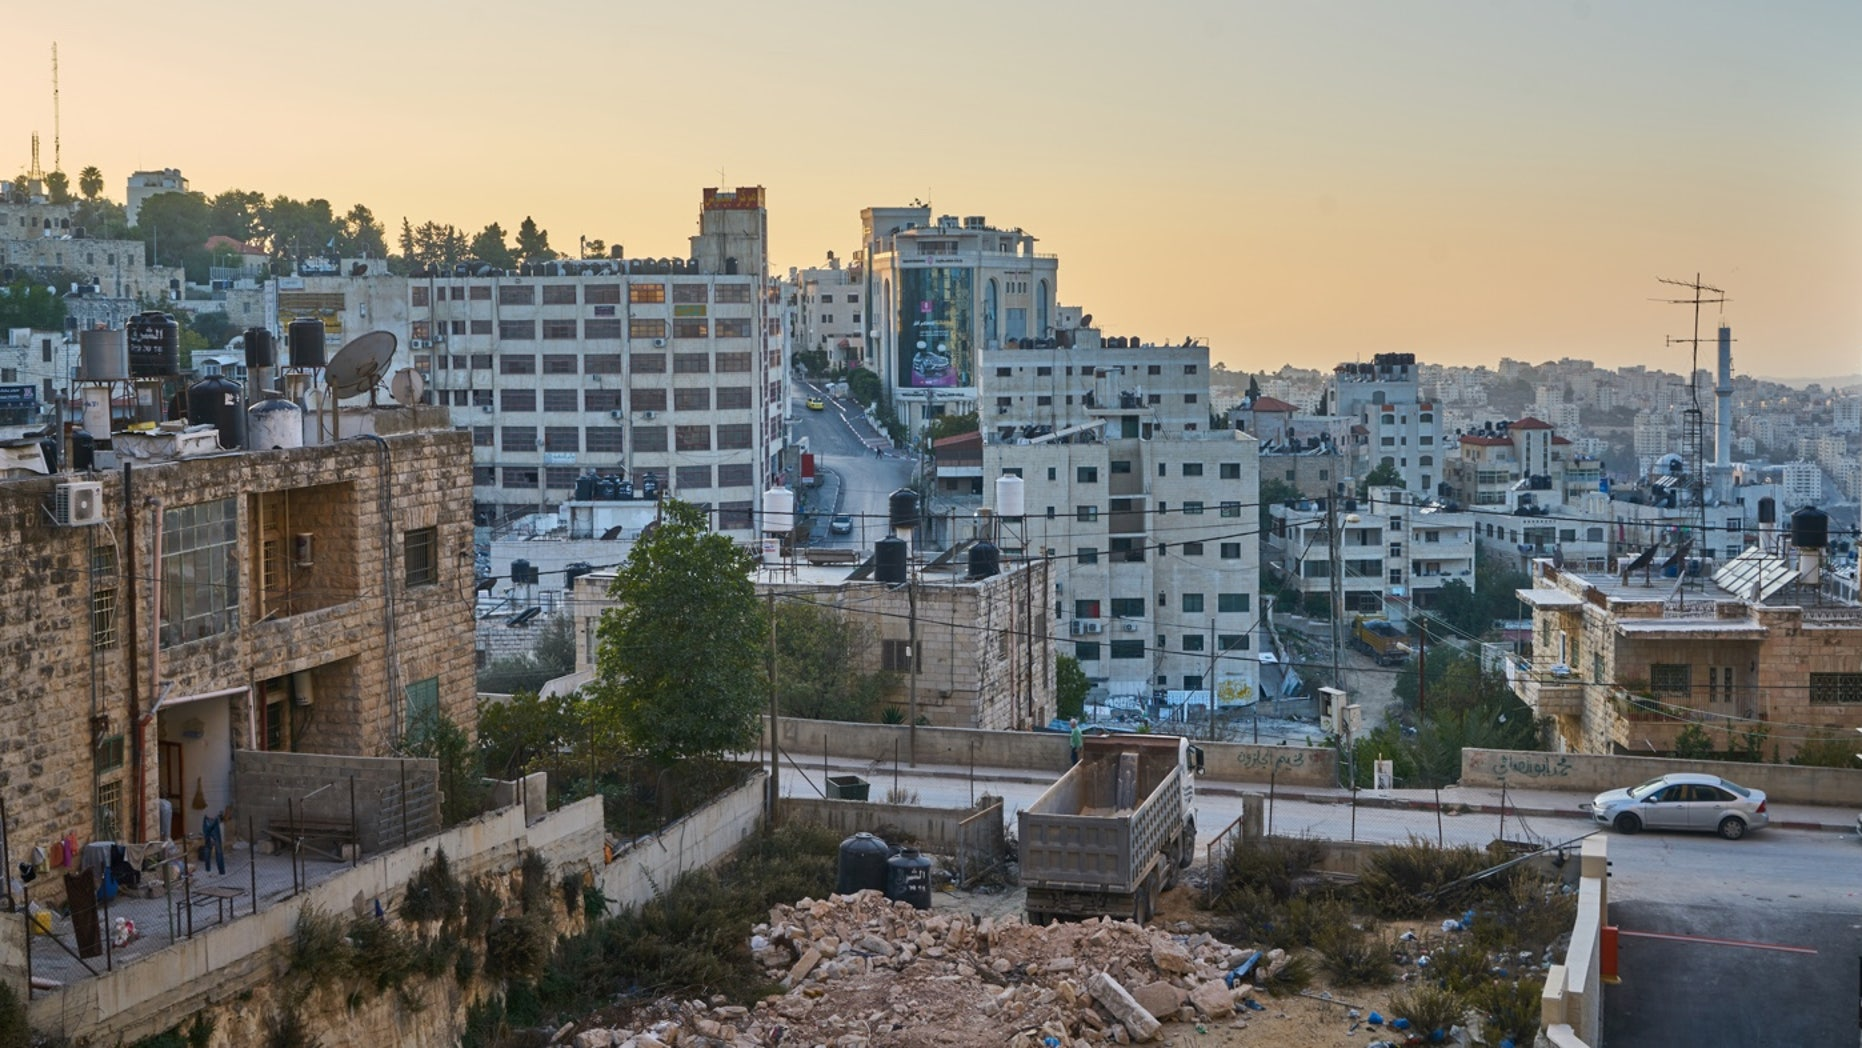 Some looters operating near the city of Ramallah in the West Bank have turned to spirit possession in hopes of finding gold treasure, research shows.